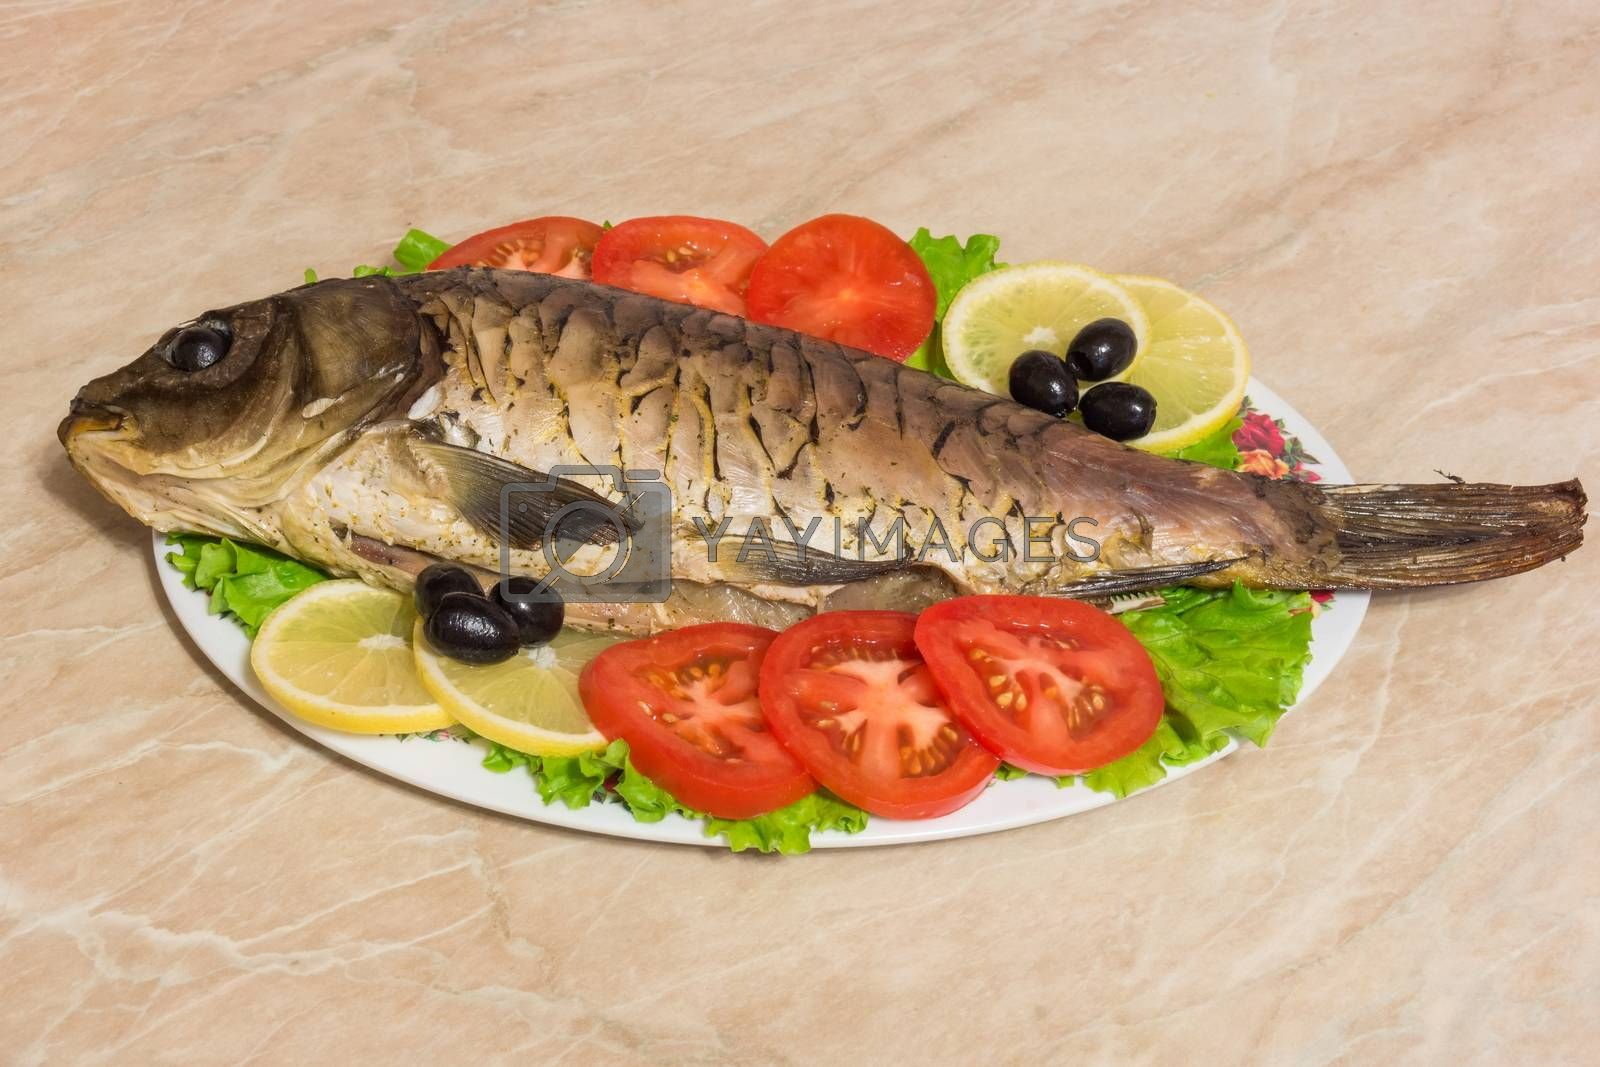 The photo shows a fish on a plate with tomatoes and olives.